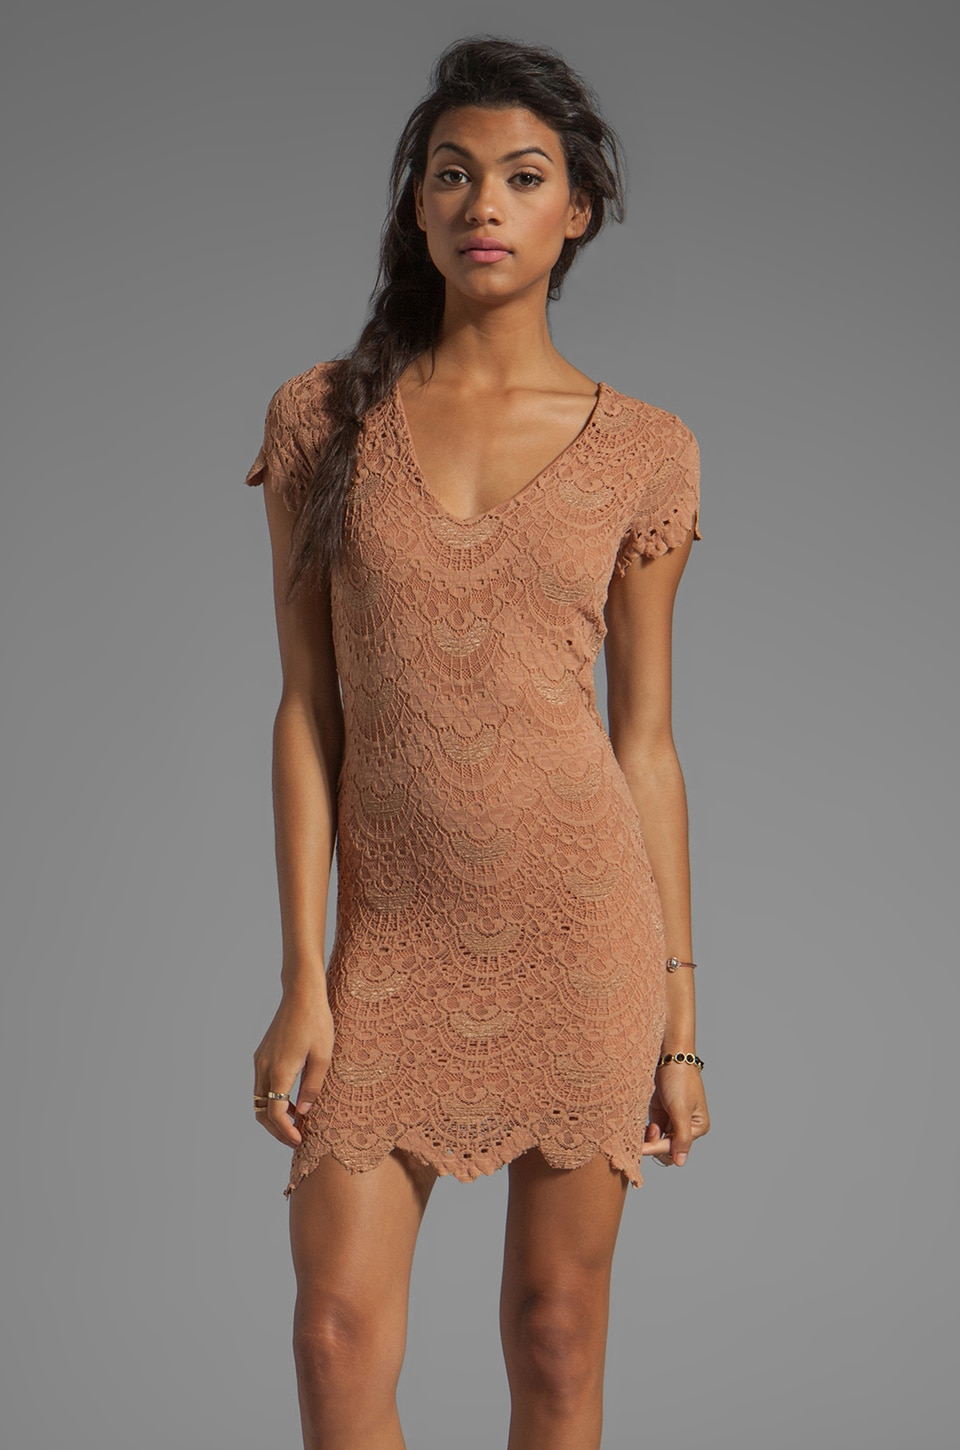 Nightcap Spanish Lace Dress in Blush